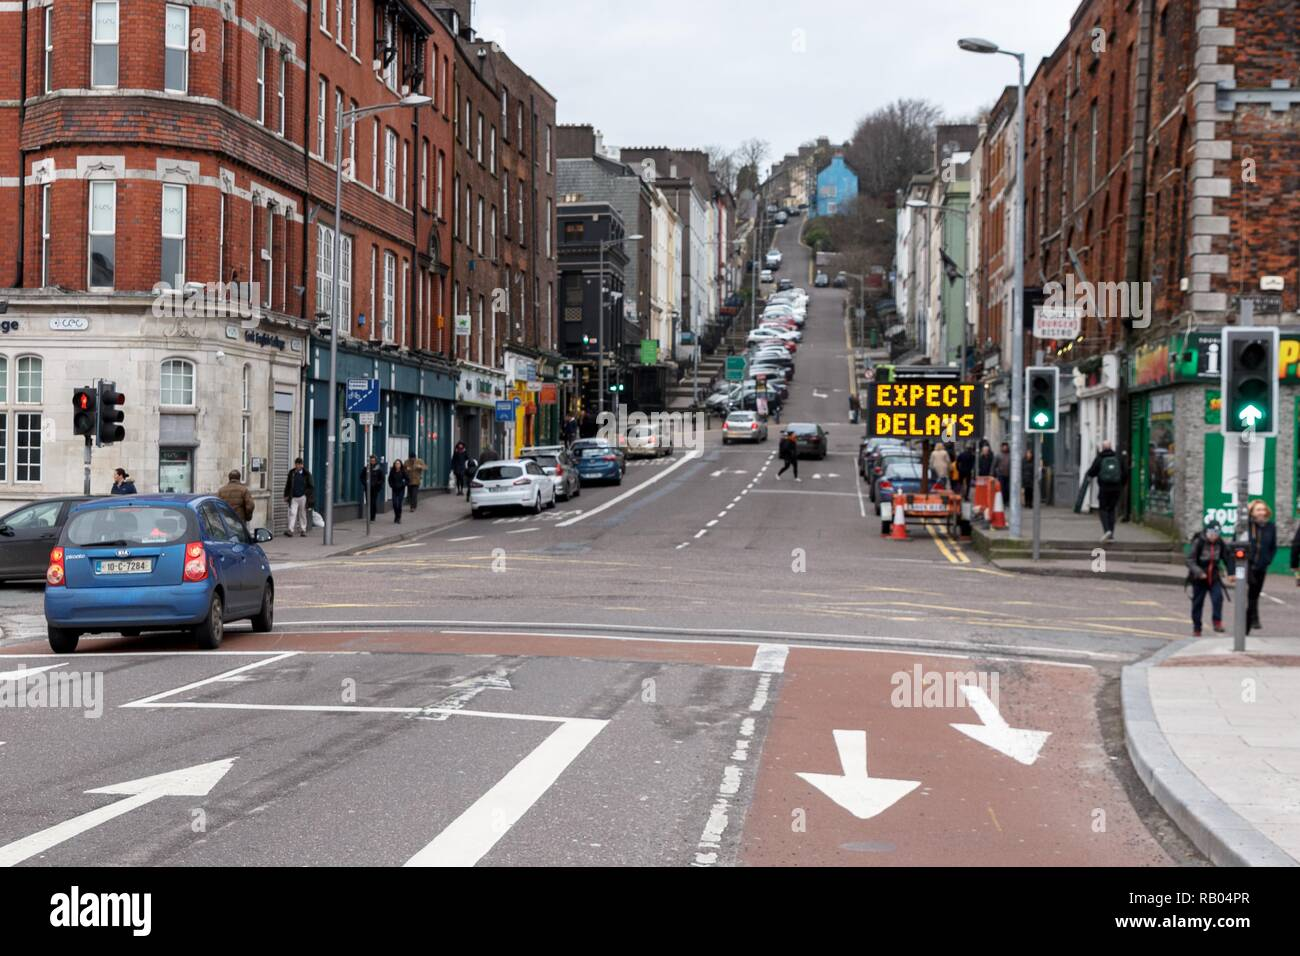 Cork, Ireland, 5th January, 2019.   MacCurtain Street Road Restricions, Cork City.  On Monday the 7th of January there will be lane restrictions in place to facilitate the installation of a water main on the Souhside of the street. The bus lane on the street will be used as a second live lane of traffic to facilitate the lane closure .  Credit: Damian Coleman/Alamy Live News. - Stock Image